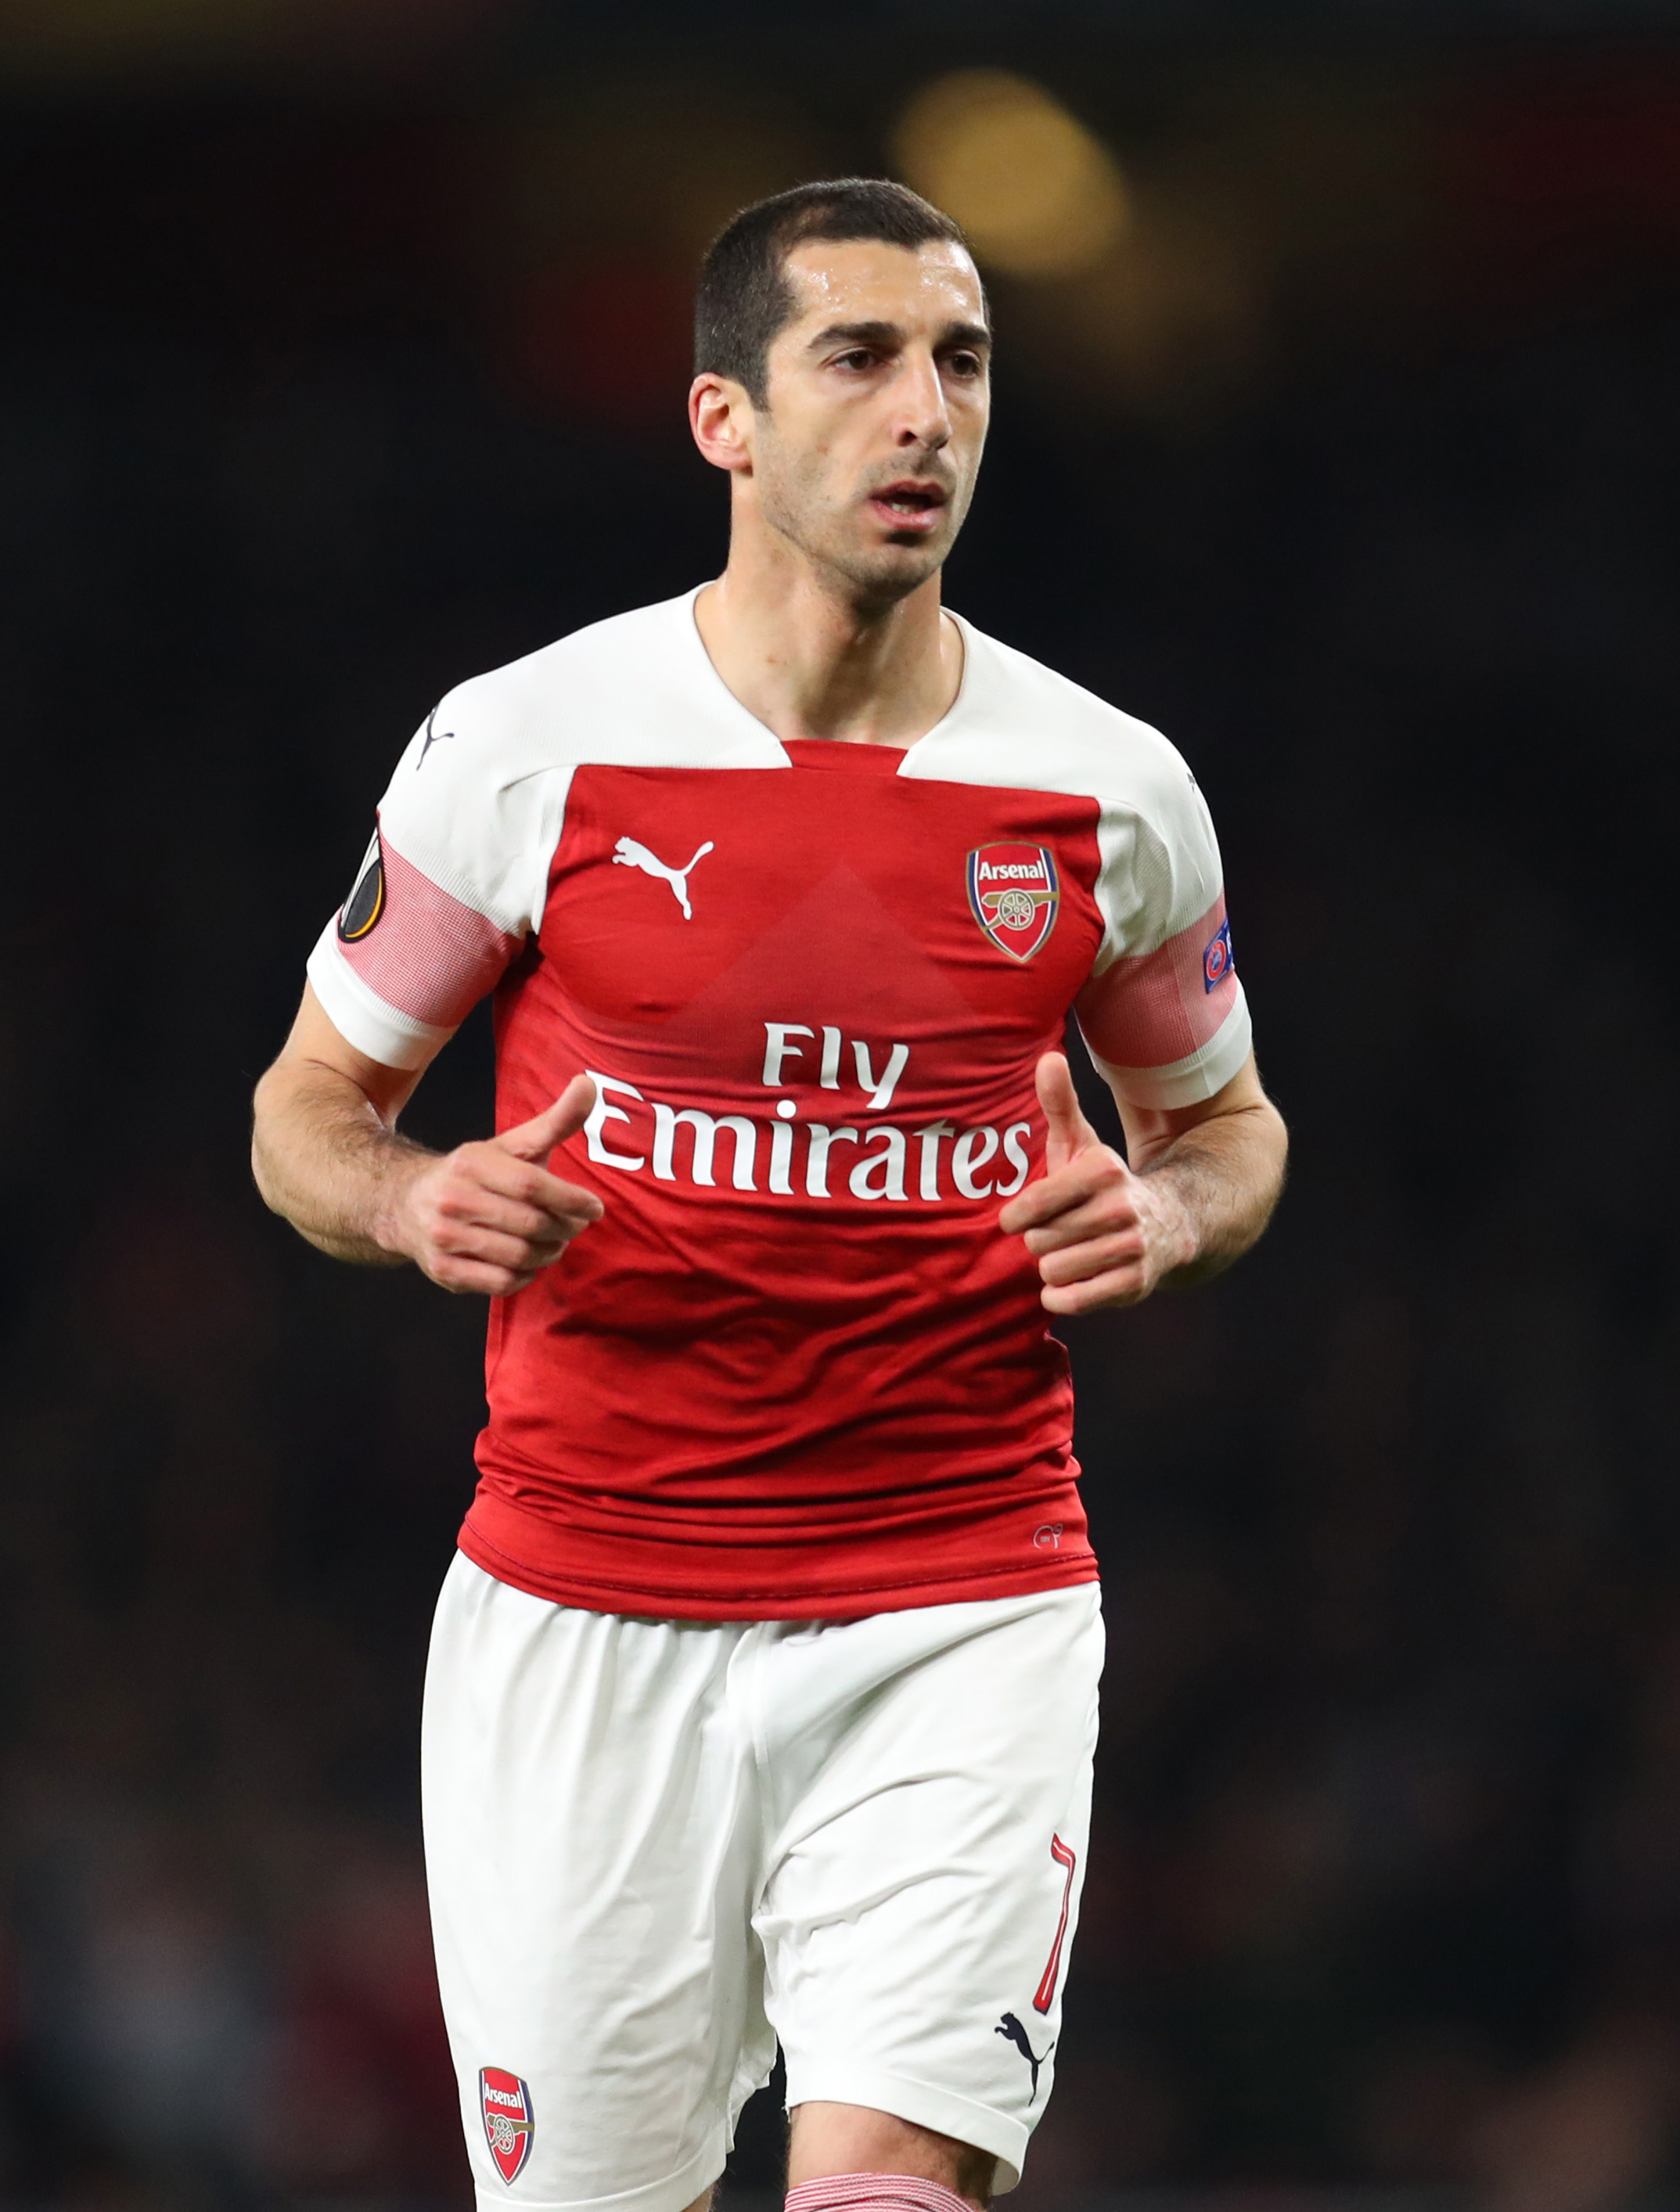 UEFA confident they'll get Arsenal's Mkhitaryan to Europa Final